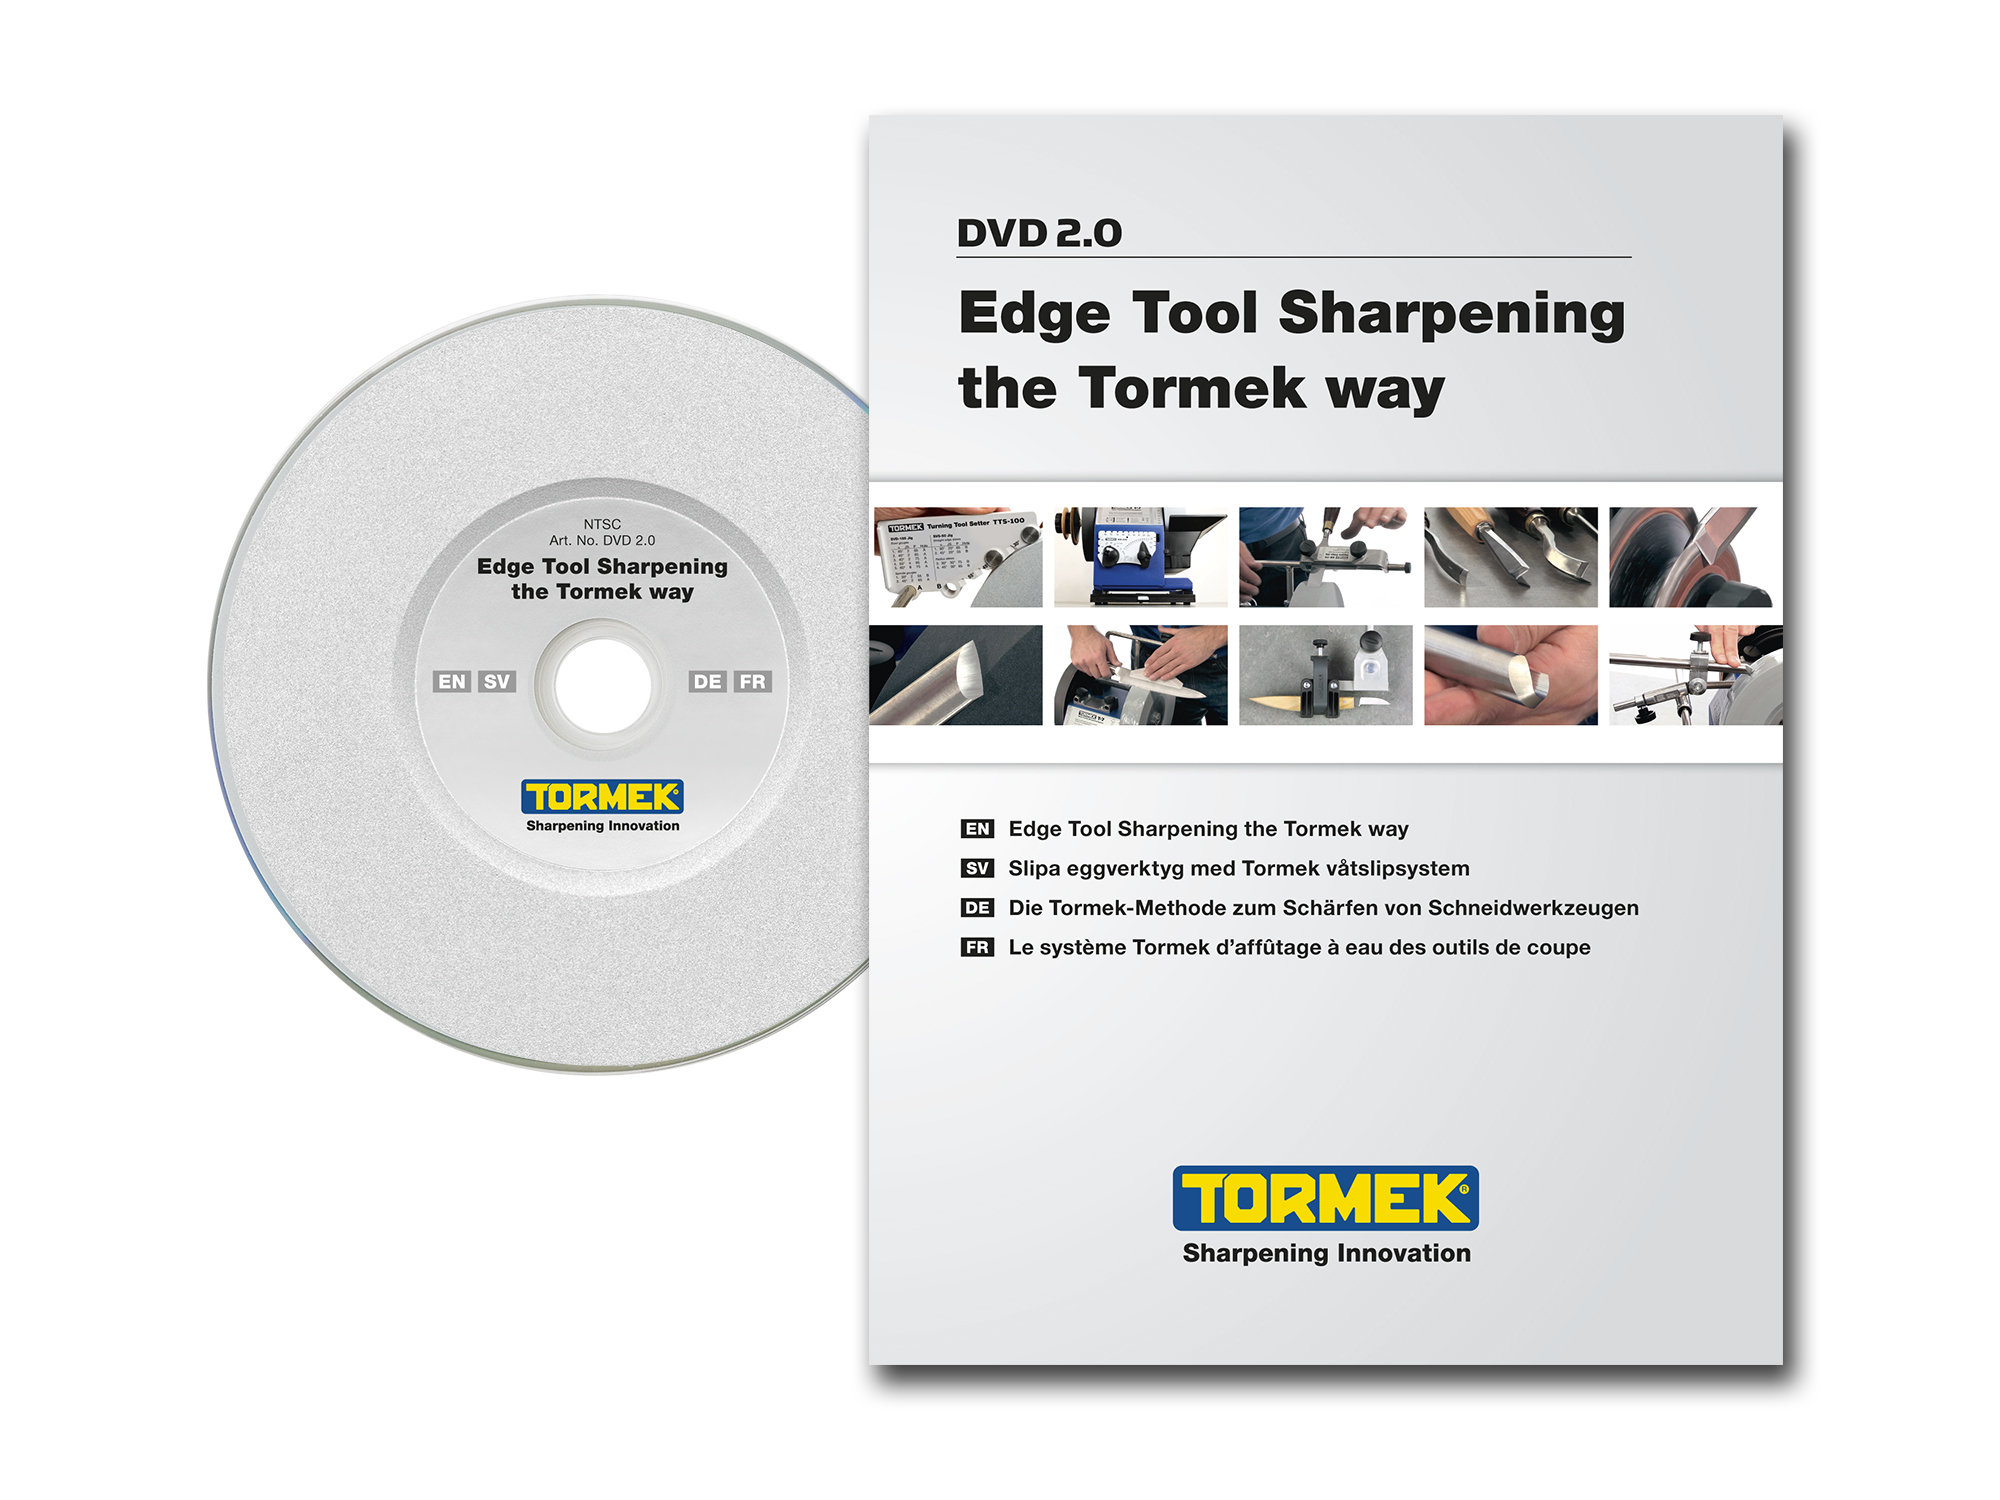 The Tormek DVD TO-DVD-2.0